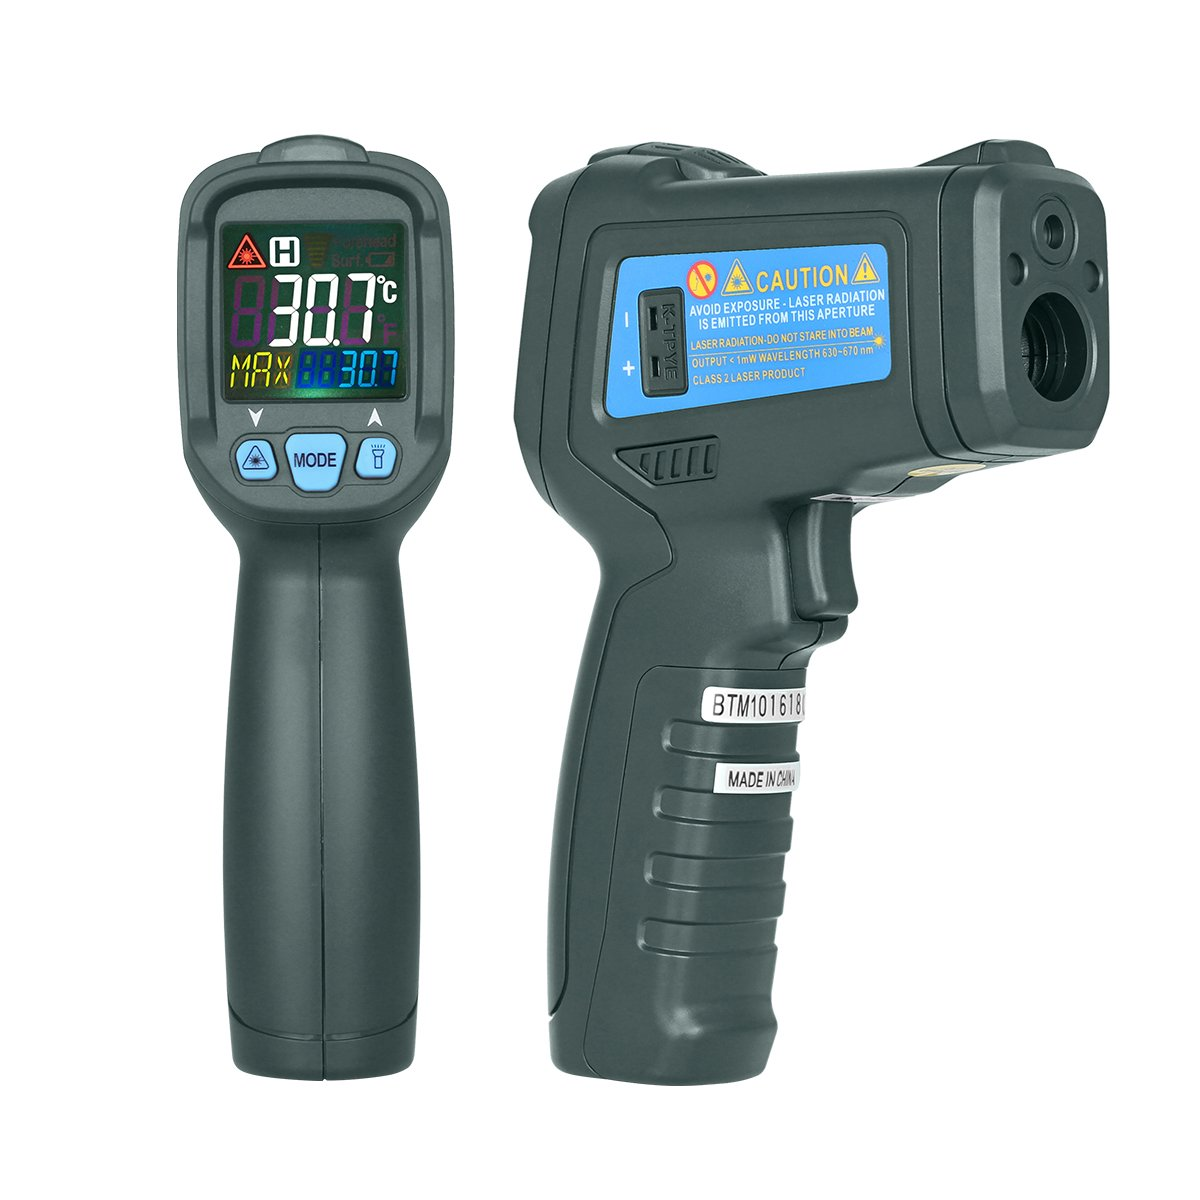 BSIDE BTM21C Digital IR Infrared Thermometer Meat Food BBQ Temperature Gun -58℉~1022℉ (-50℃~550℃) with K-type Thermocouple